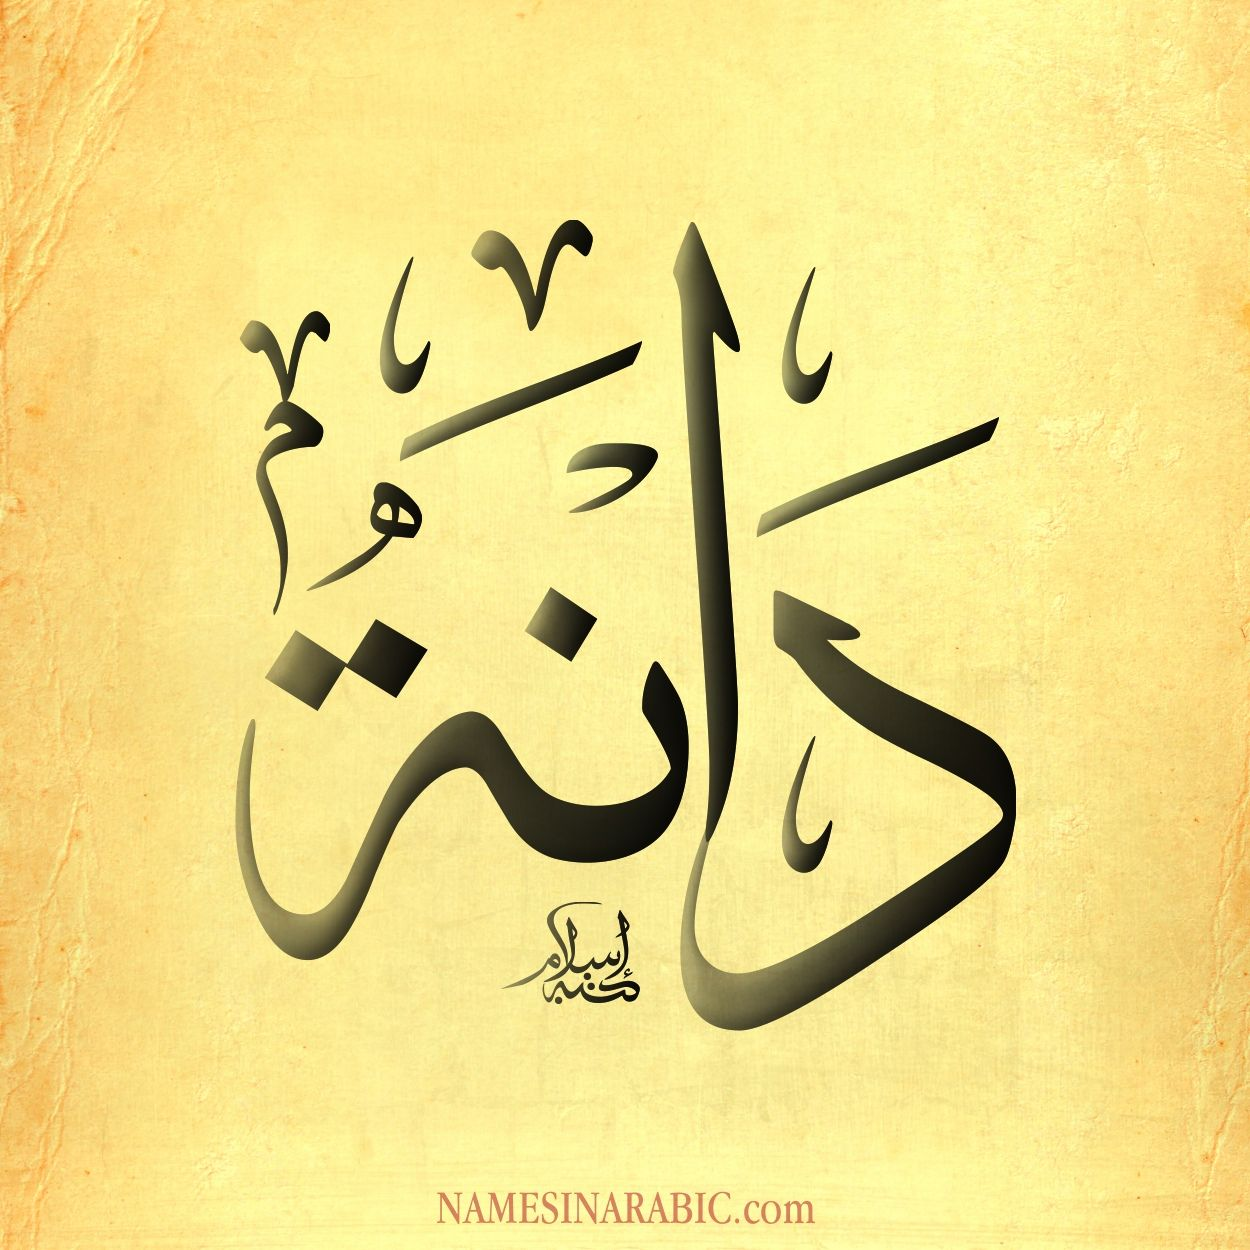 Image Result For دانه مزخرف Calligraphy Name Arabic Calligraphy Islamic Art